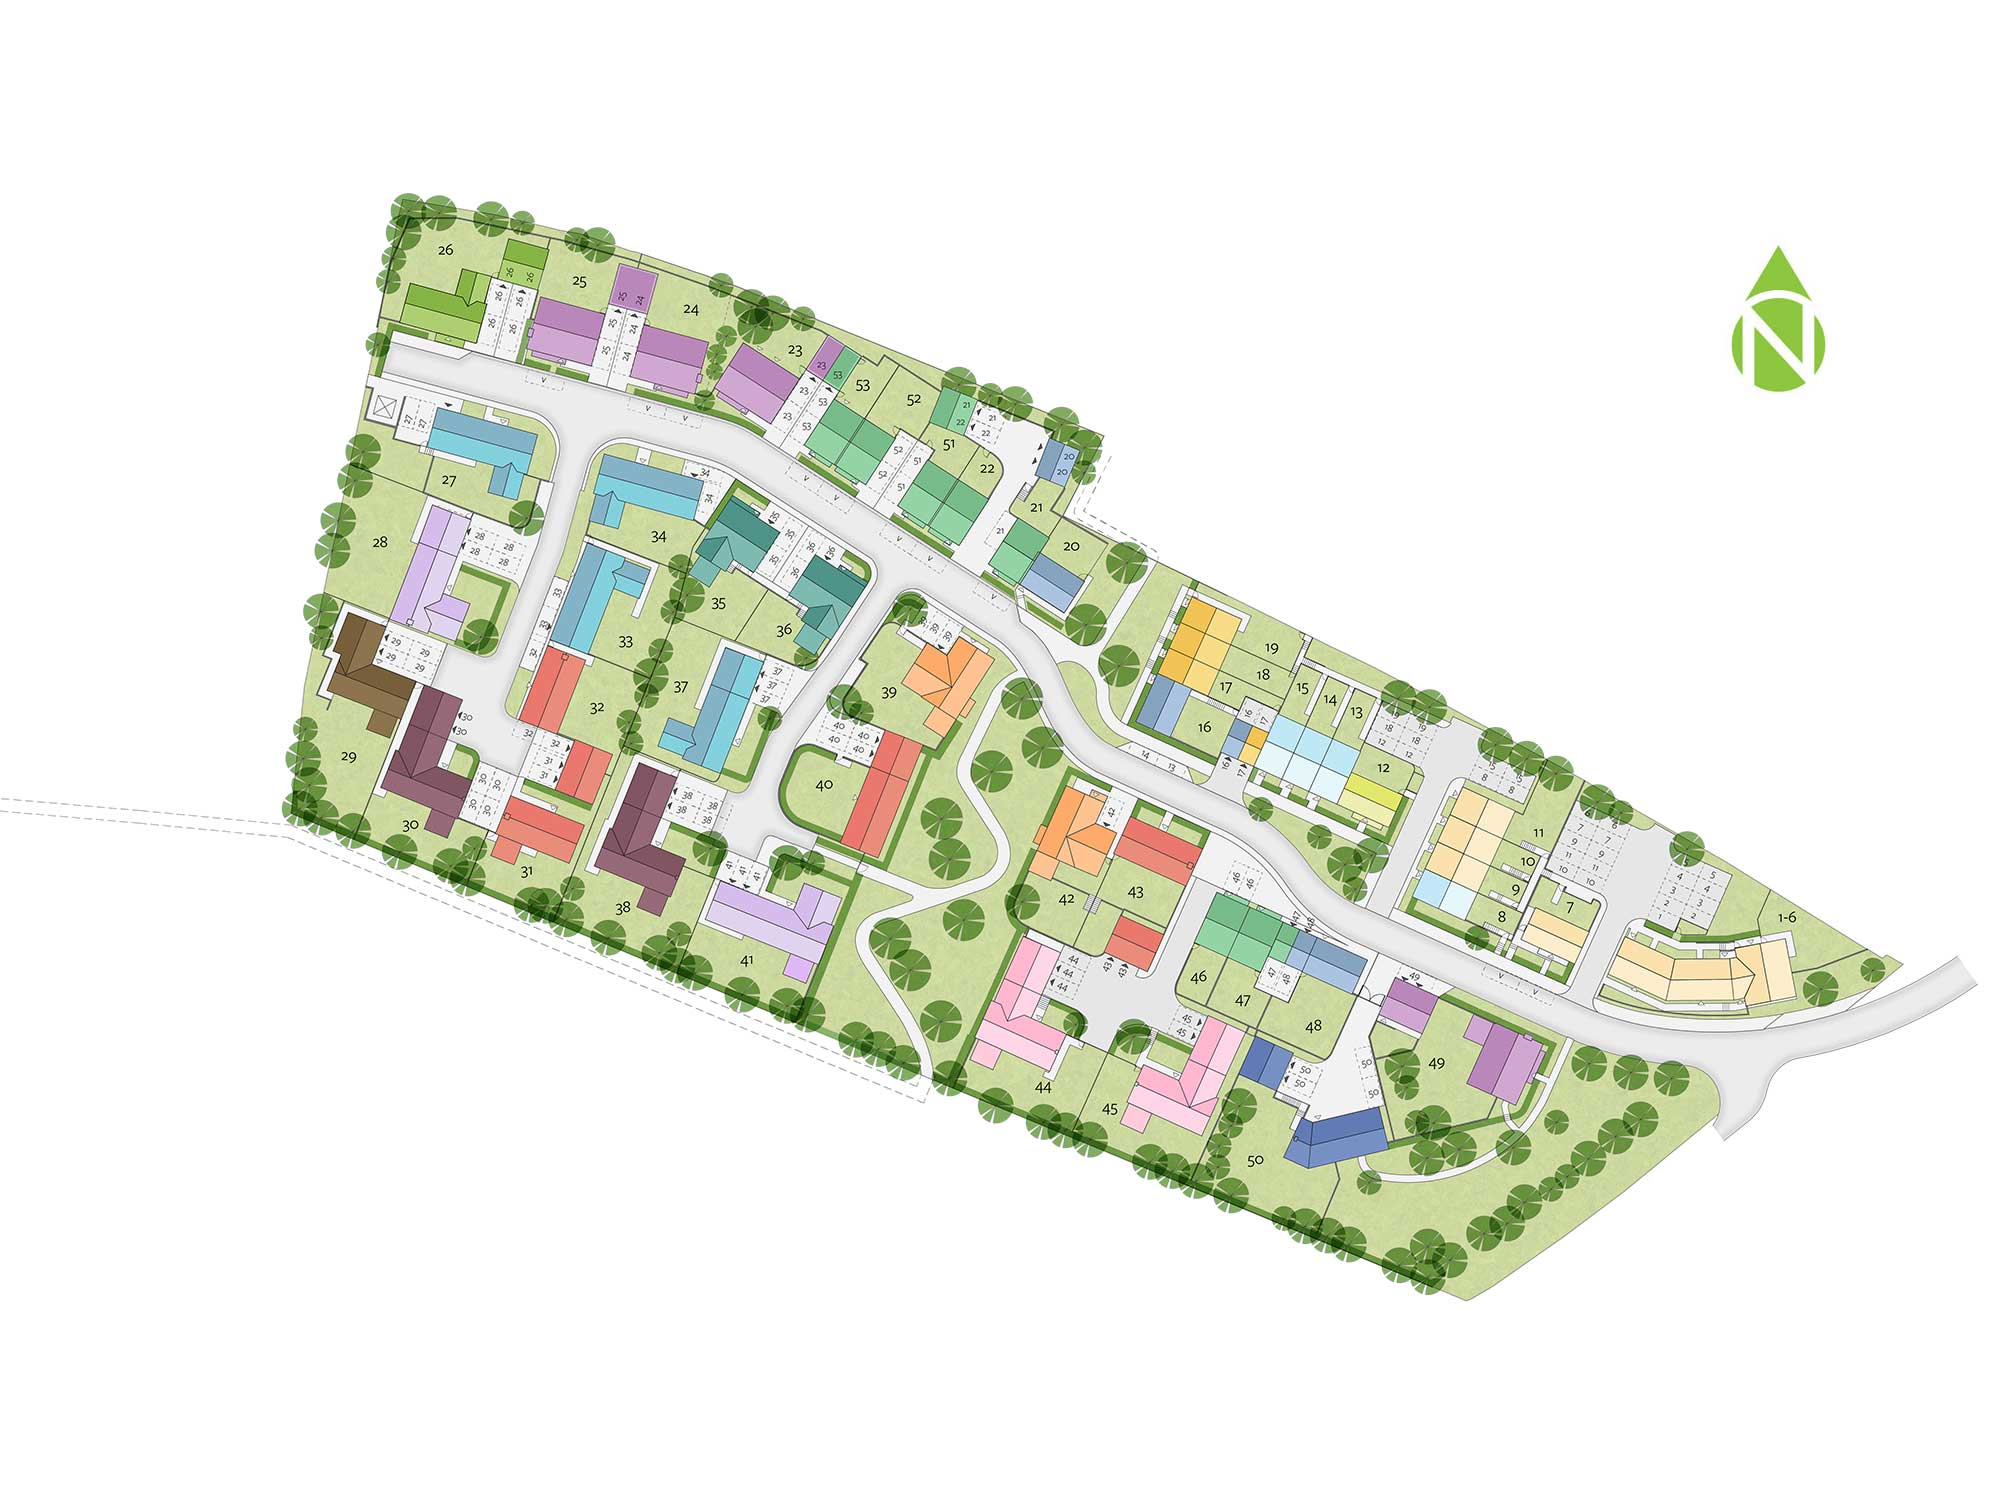 Development siteplan